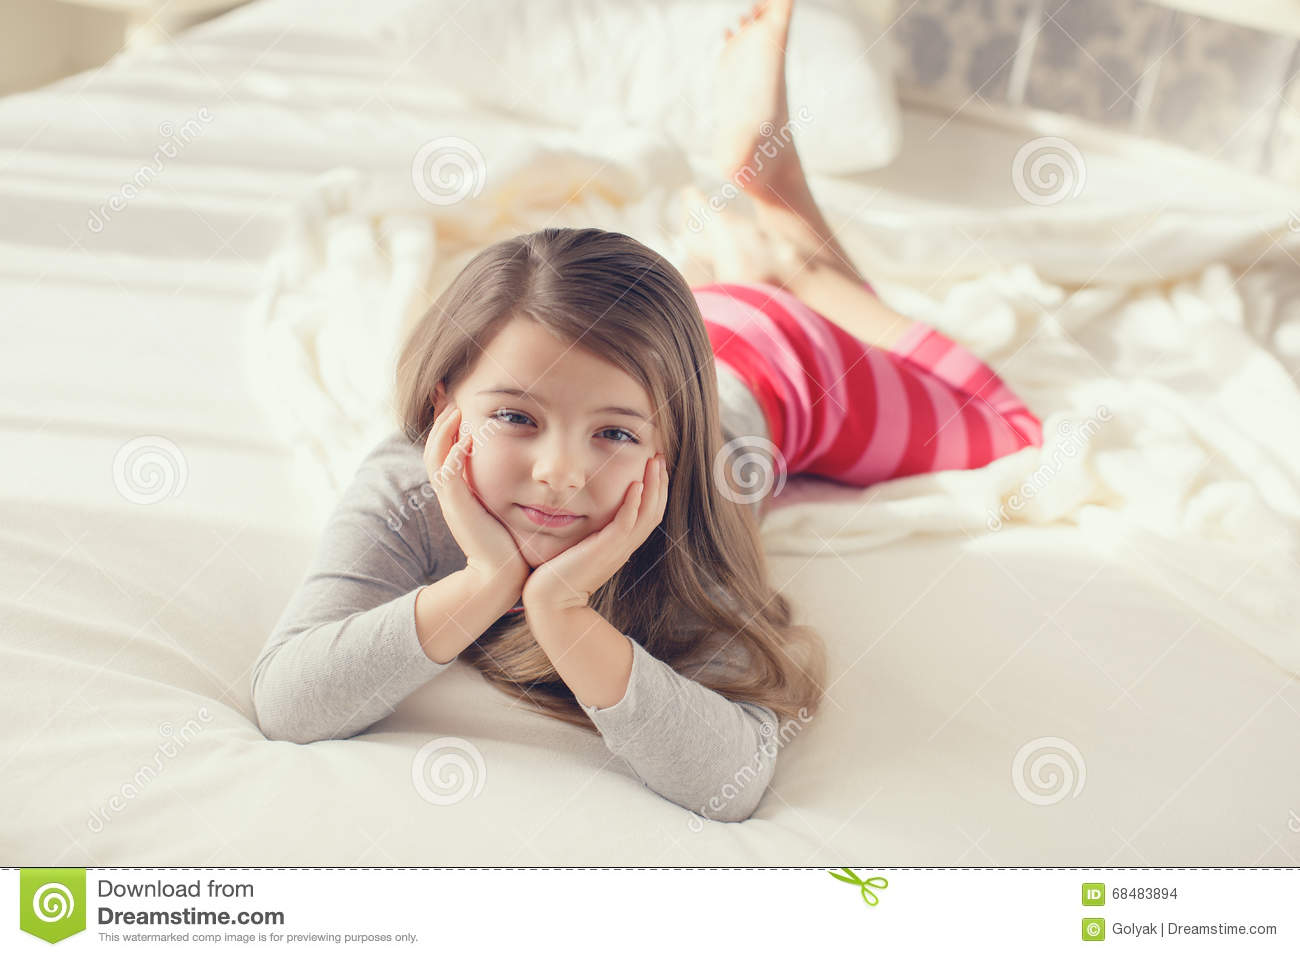 The Little Girl Woke Up And Lay In Bed Stock Photo Image Of Chin